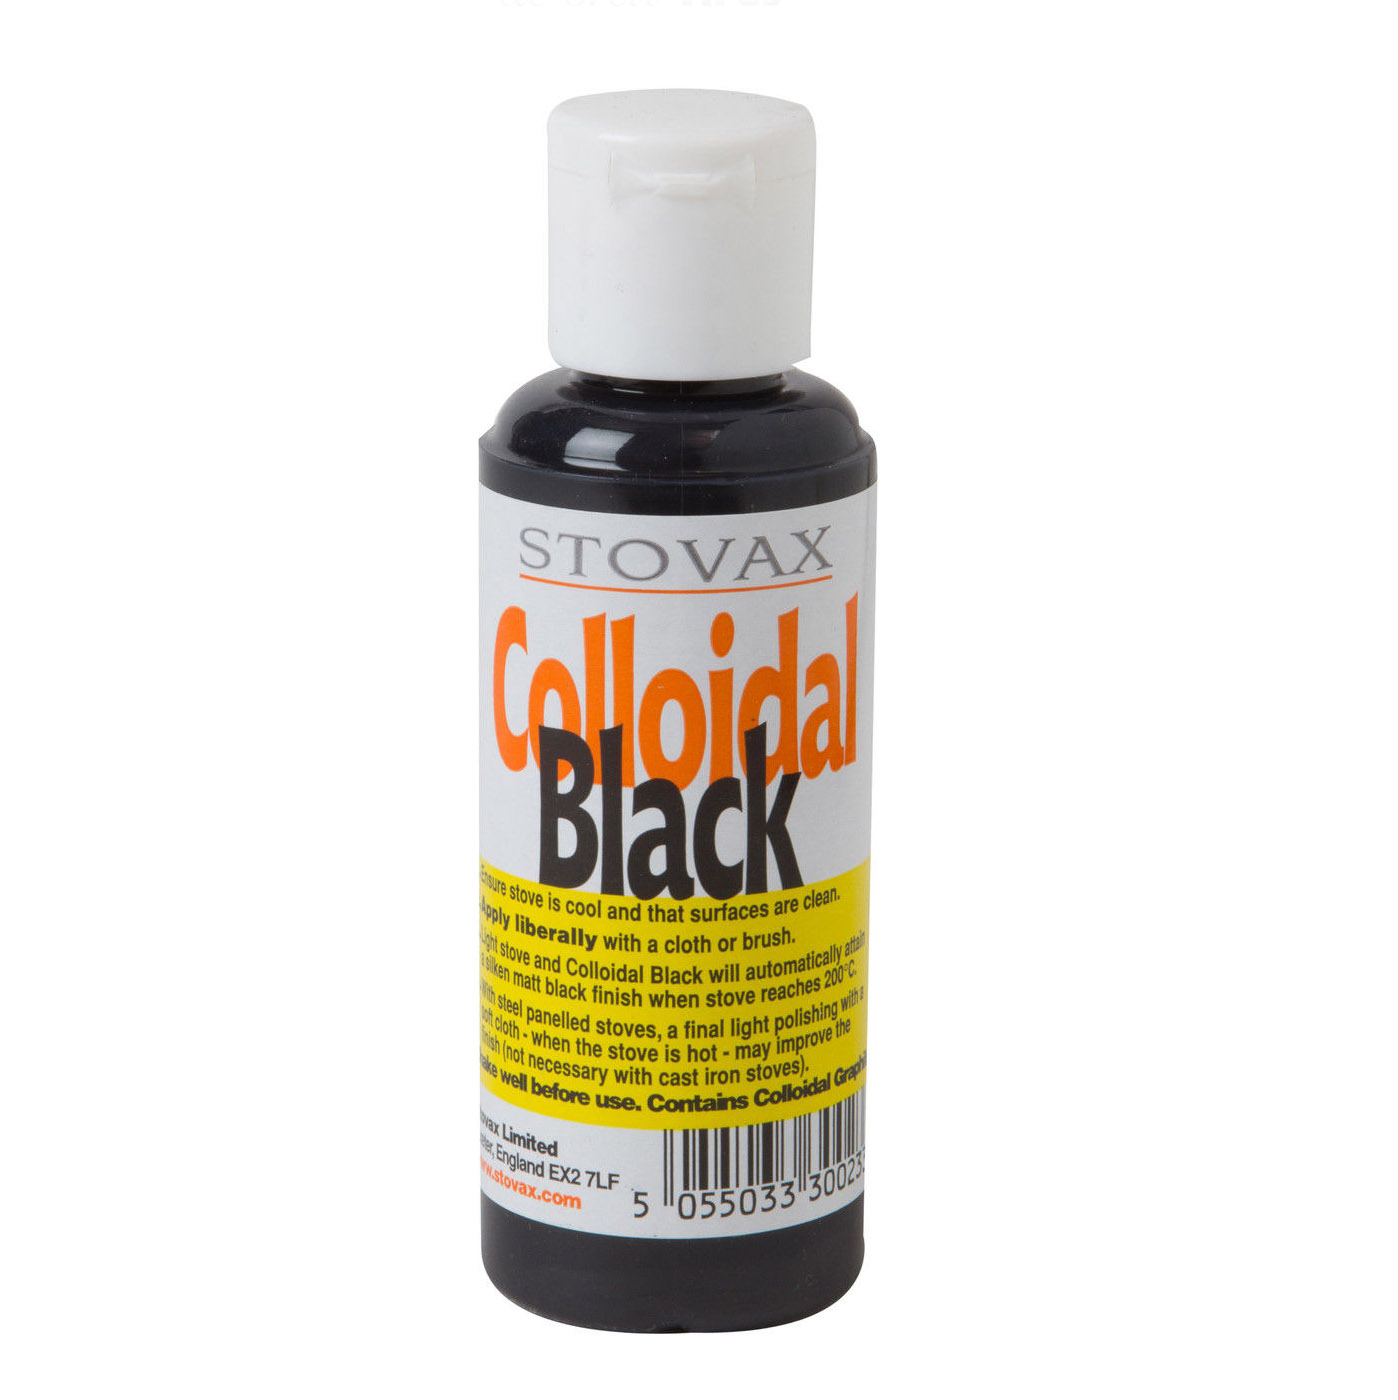 18 black soot from gas fireplace stovax black colloidal